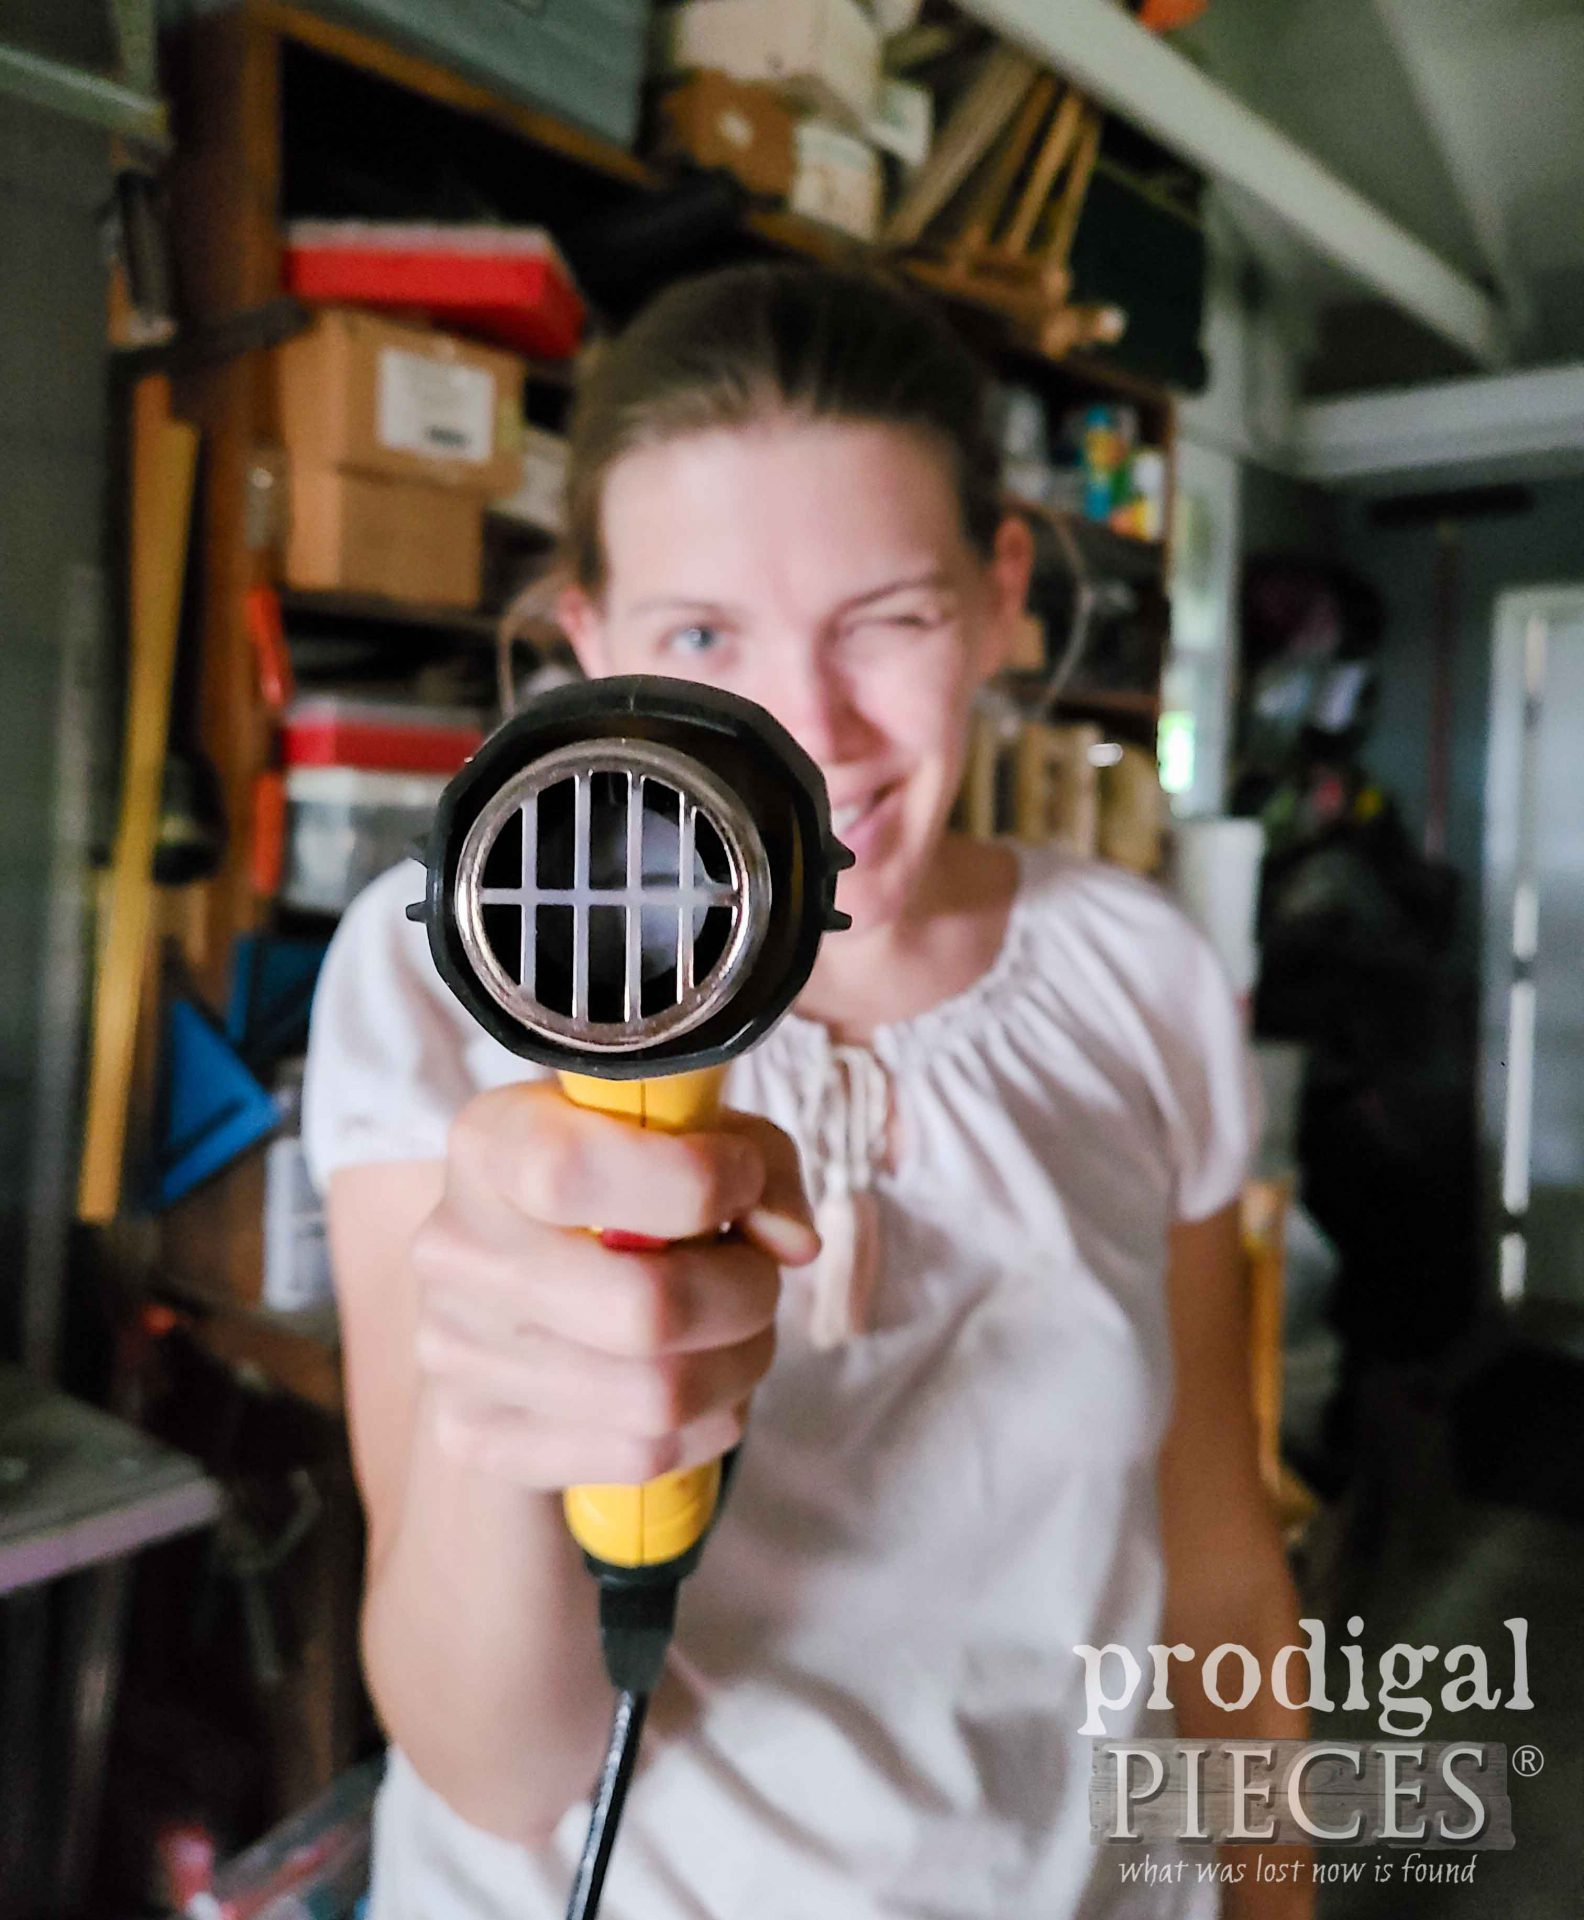 Larissa of Prodigal Pieces with Wagner Heat Gun | prodigalpieces.com #prodigalpieces